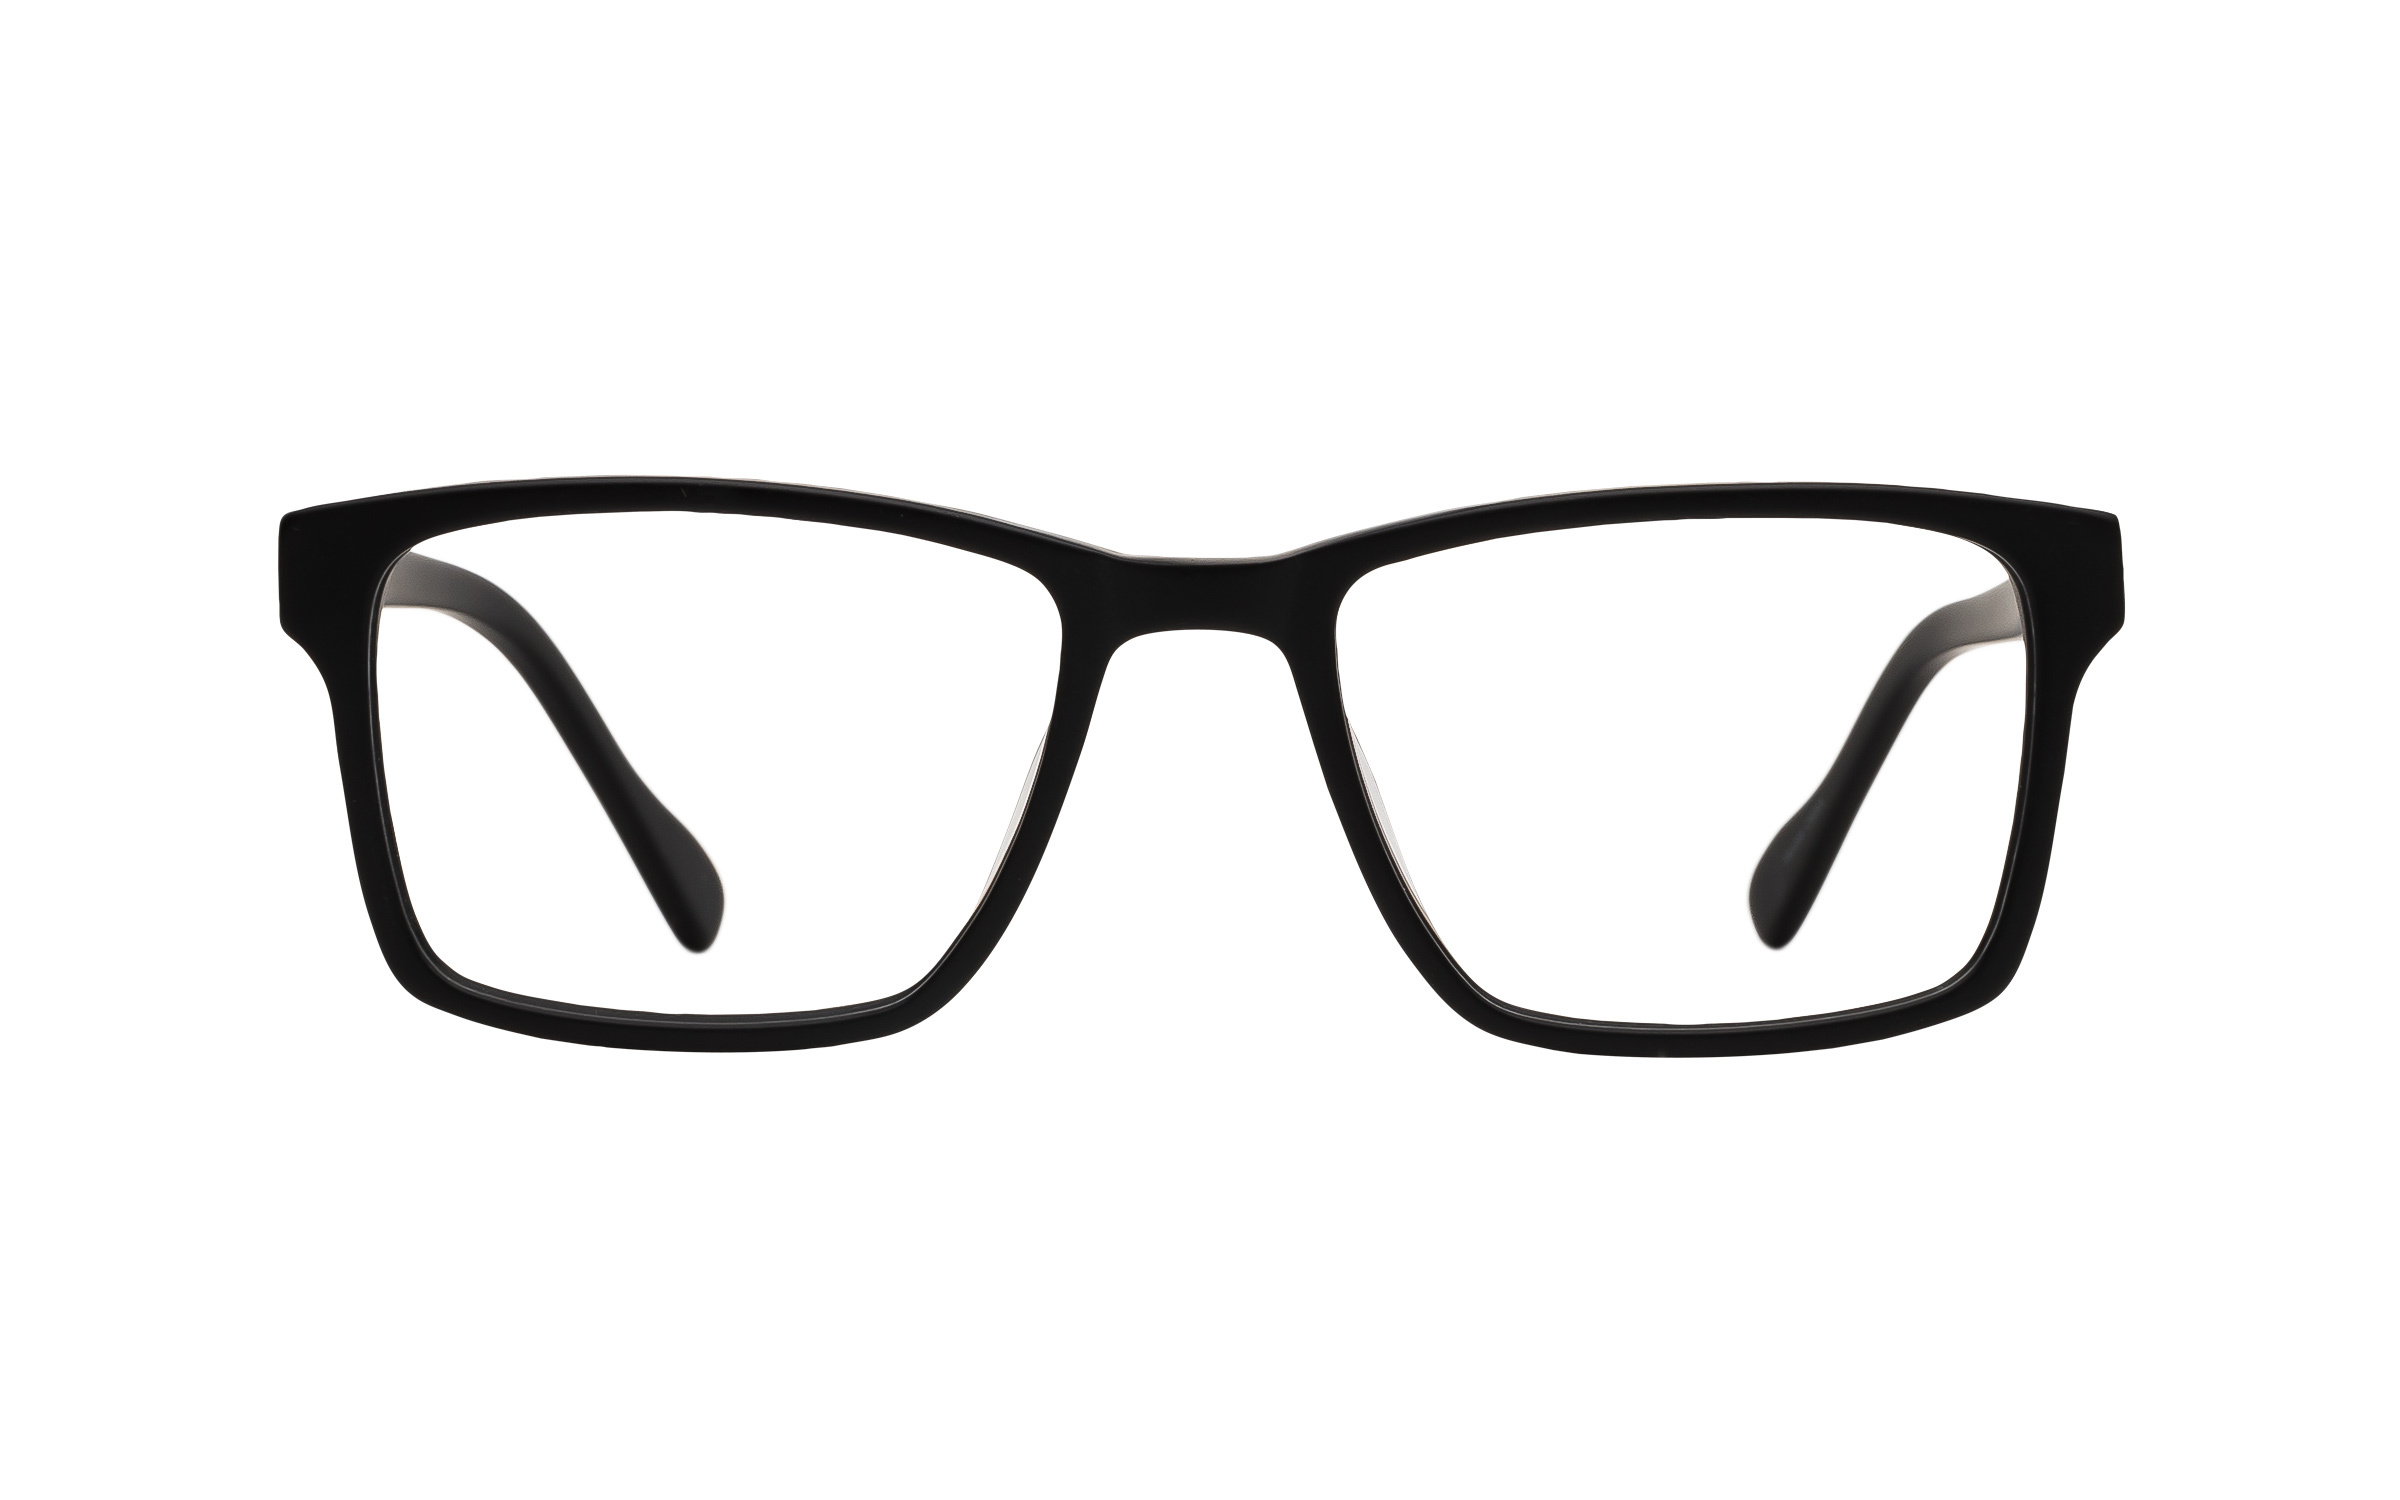 7 for All Mankind Glasses Rectangular Black Online Clearly